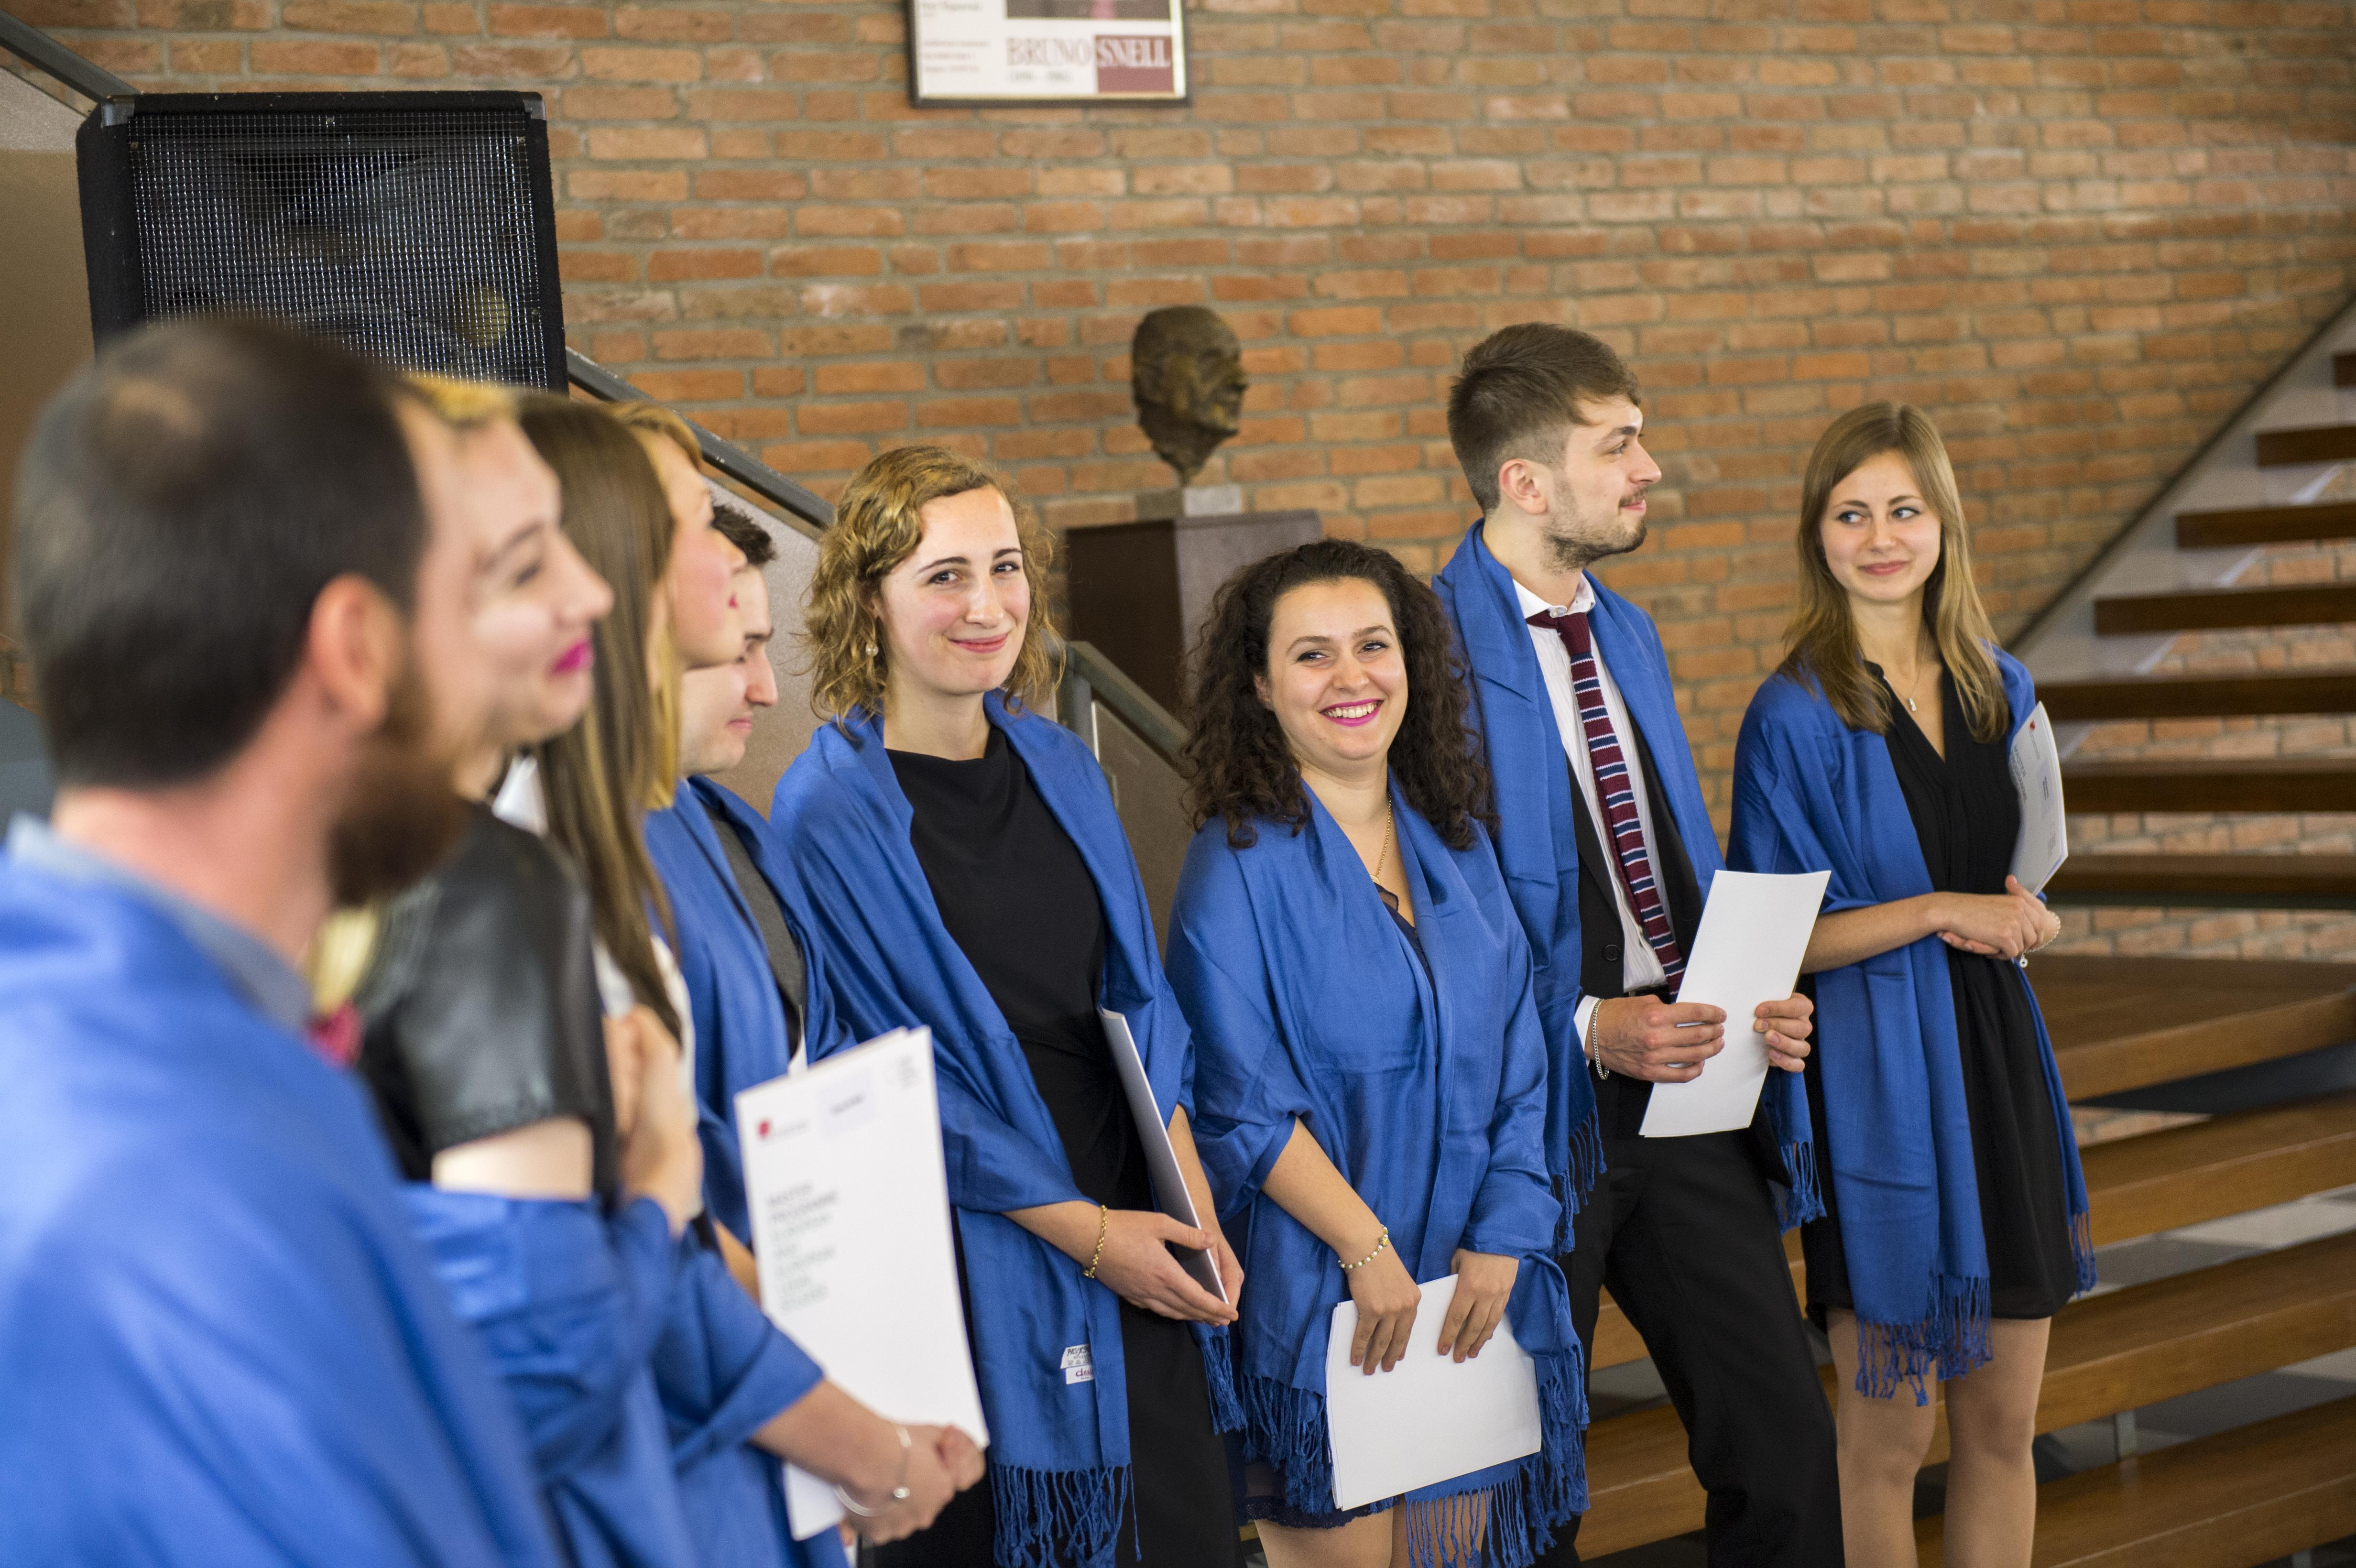 Graduation Ceremony Reception: Graduation Ceremony 2015 And Welcome Reception